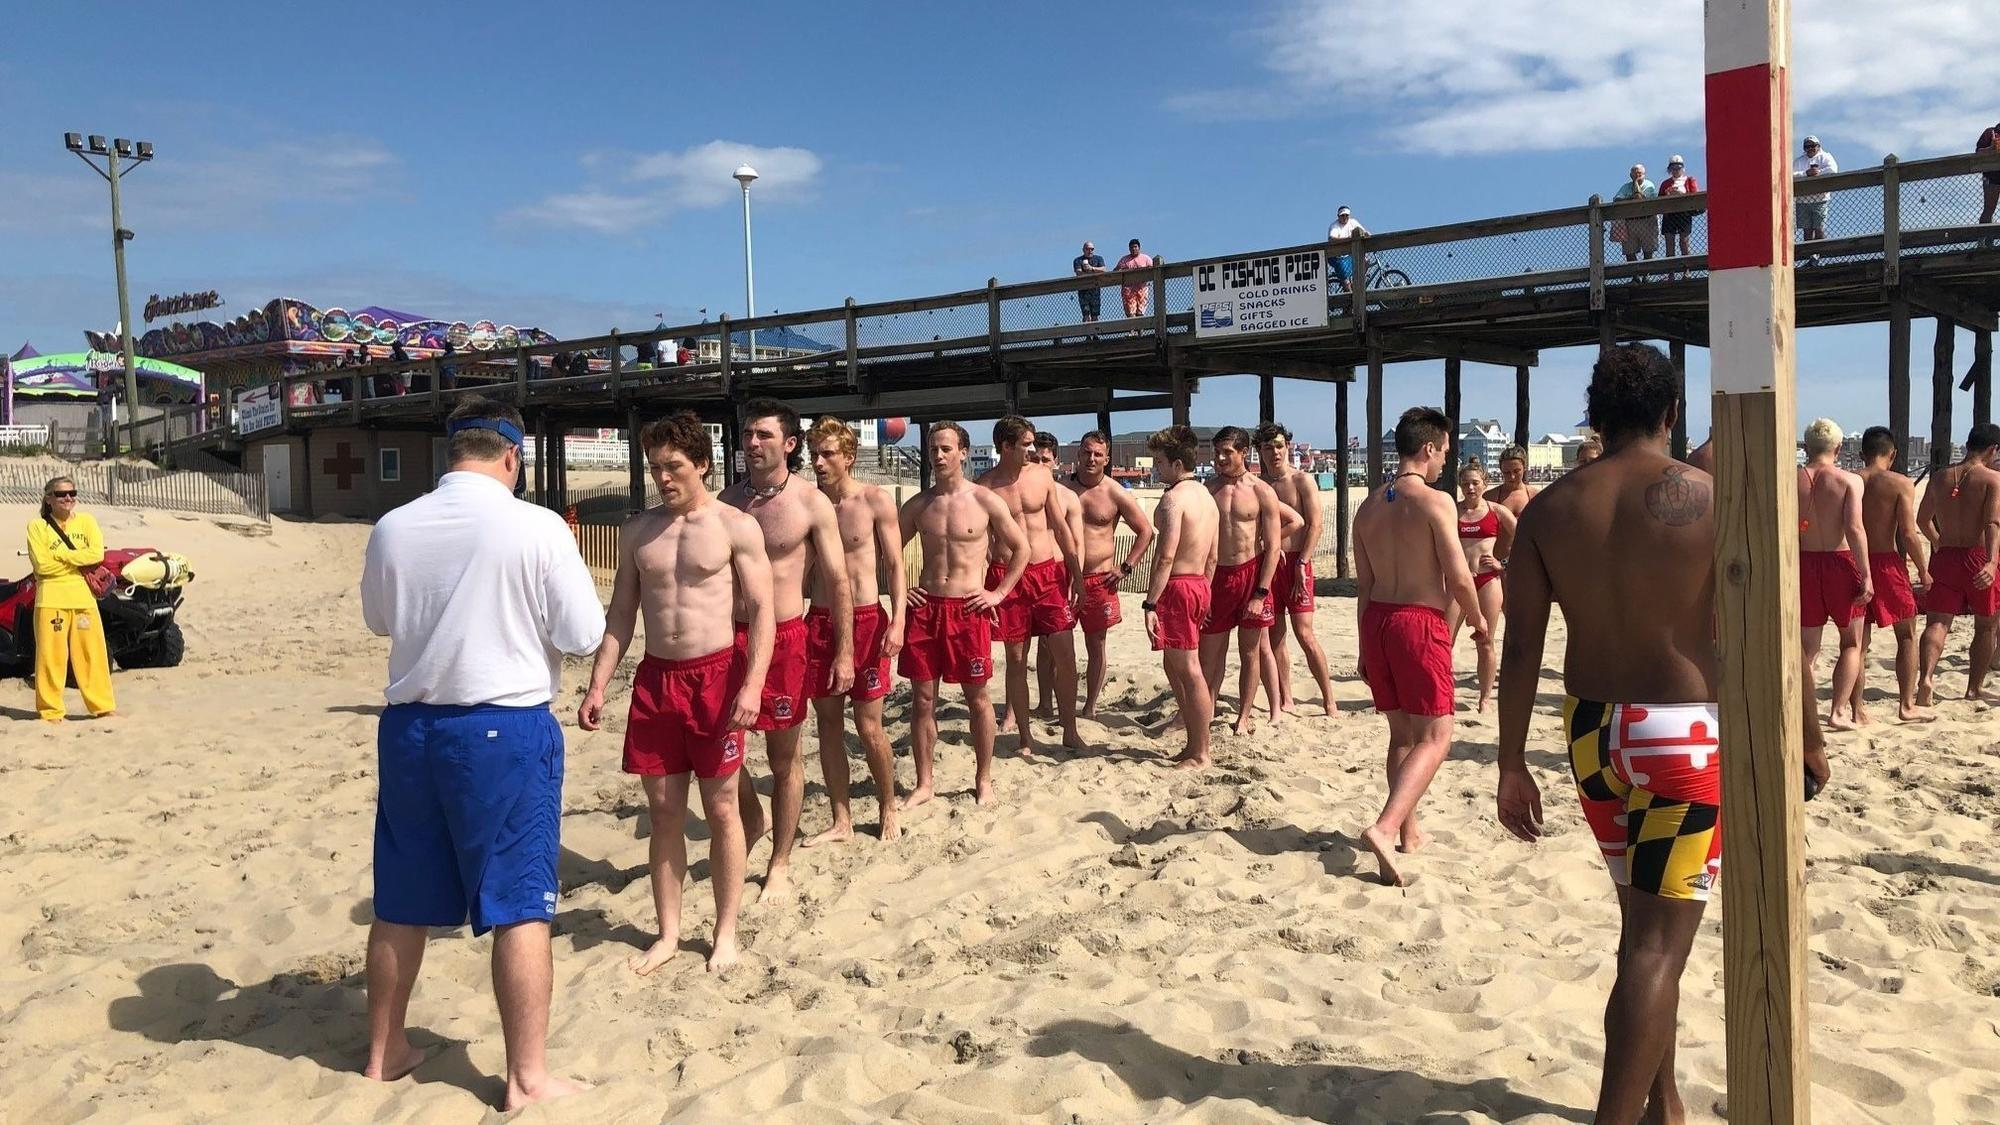 baltimoresun.com - Kevin Rector - In Ocean City, another lifeguard season begins - two minutes early